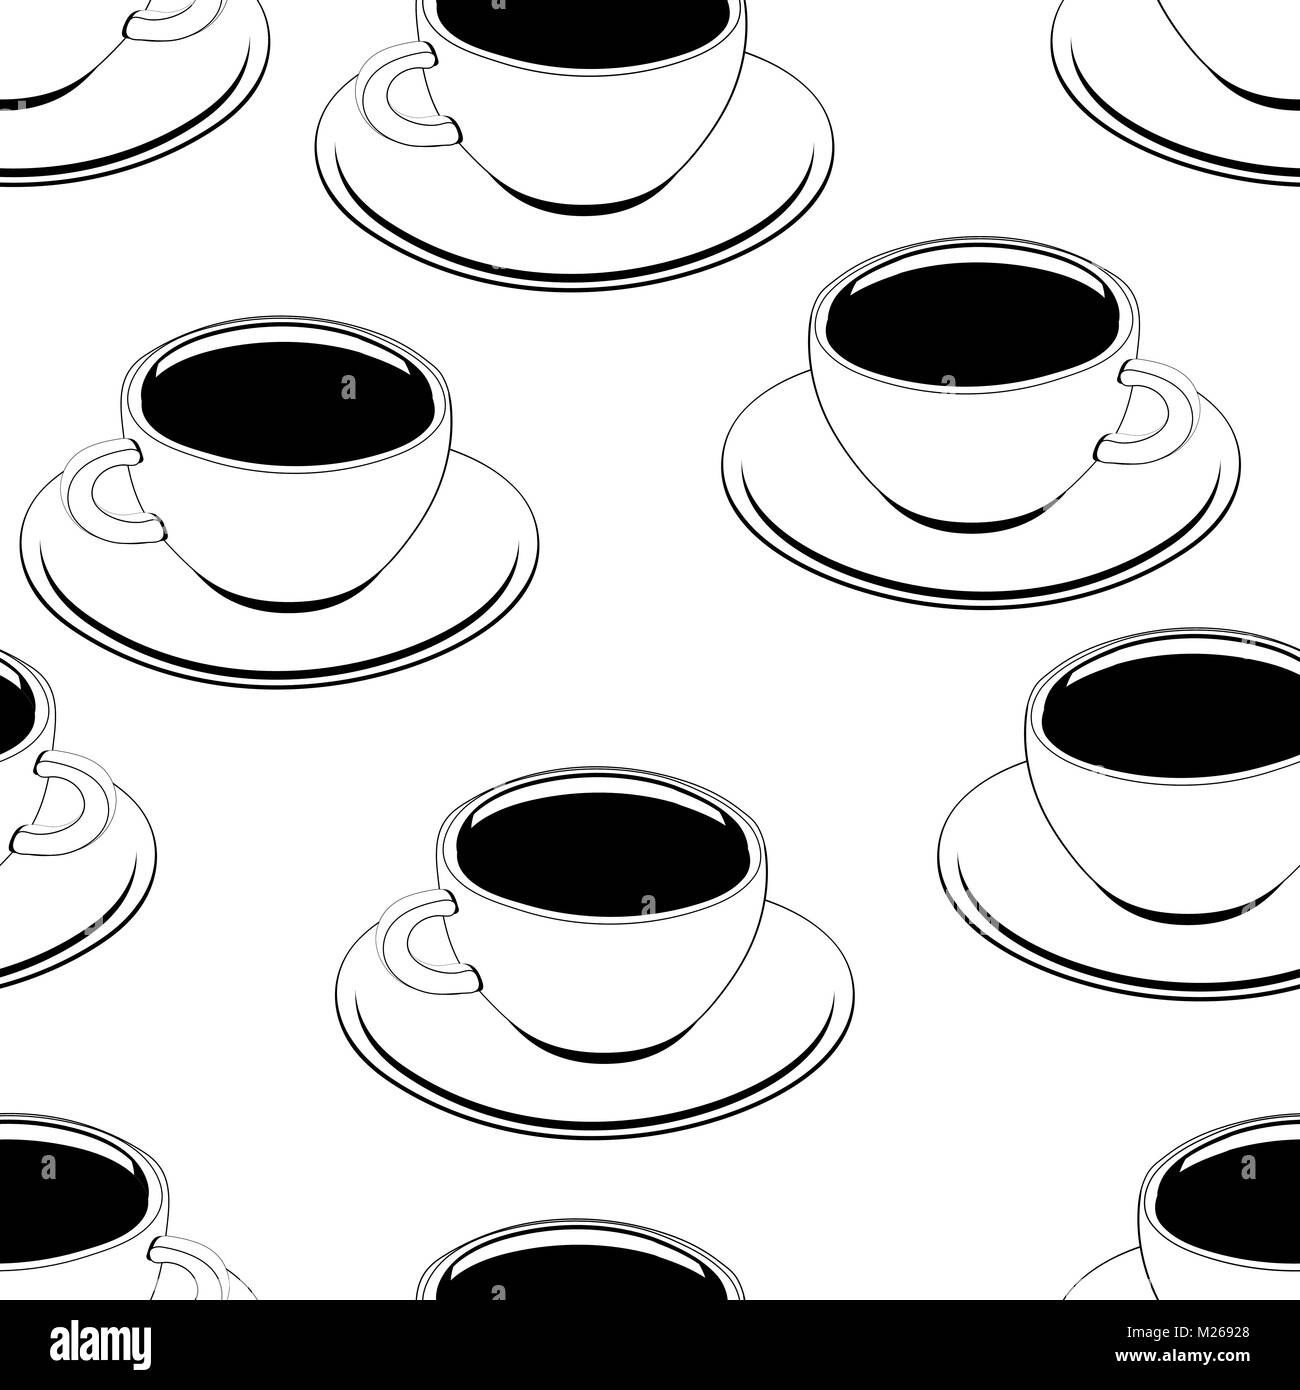 Cup of coffee outline seamless pattern, vector background, coloring, sketch, contour drawing. Drawn cups of black - Stock Vector